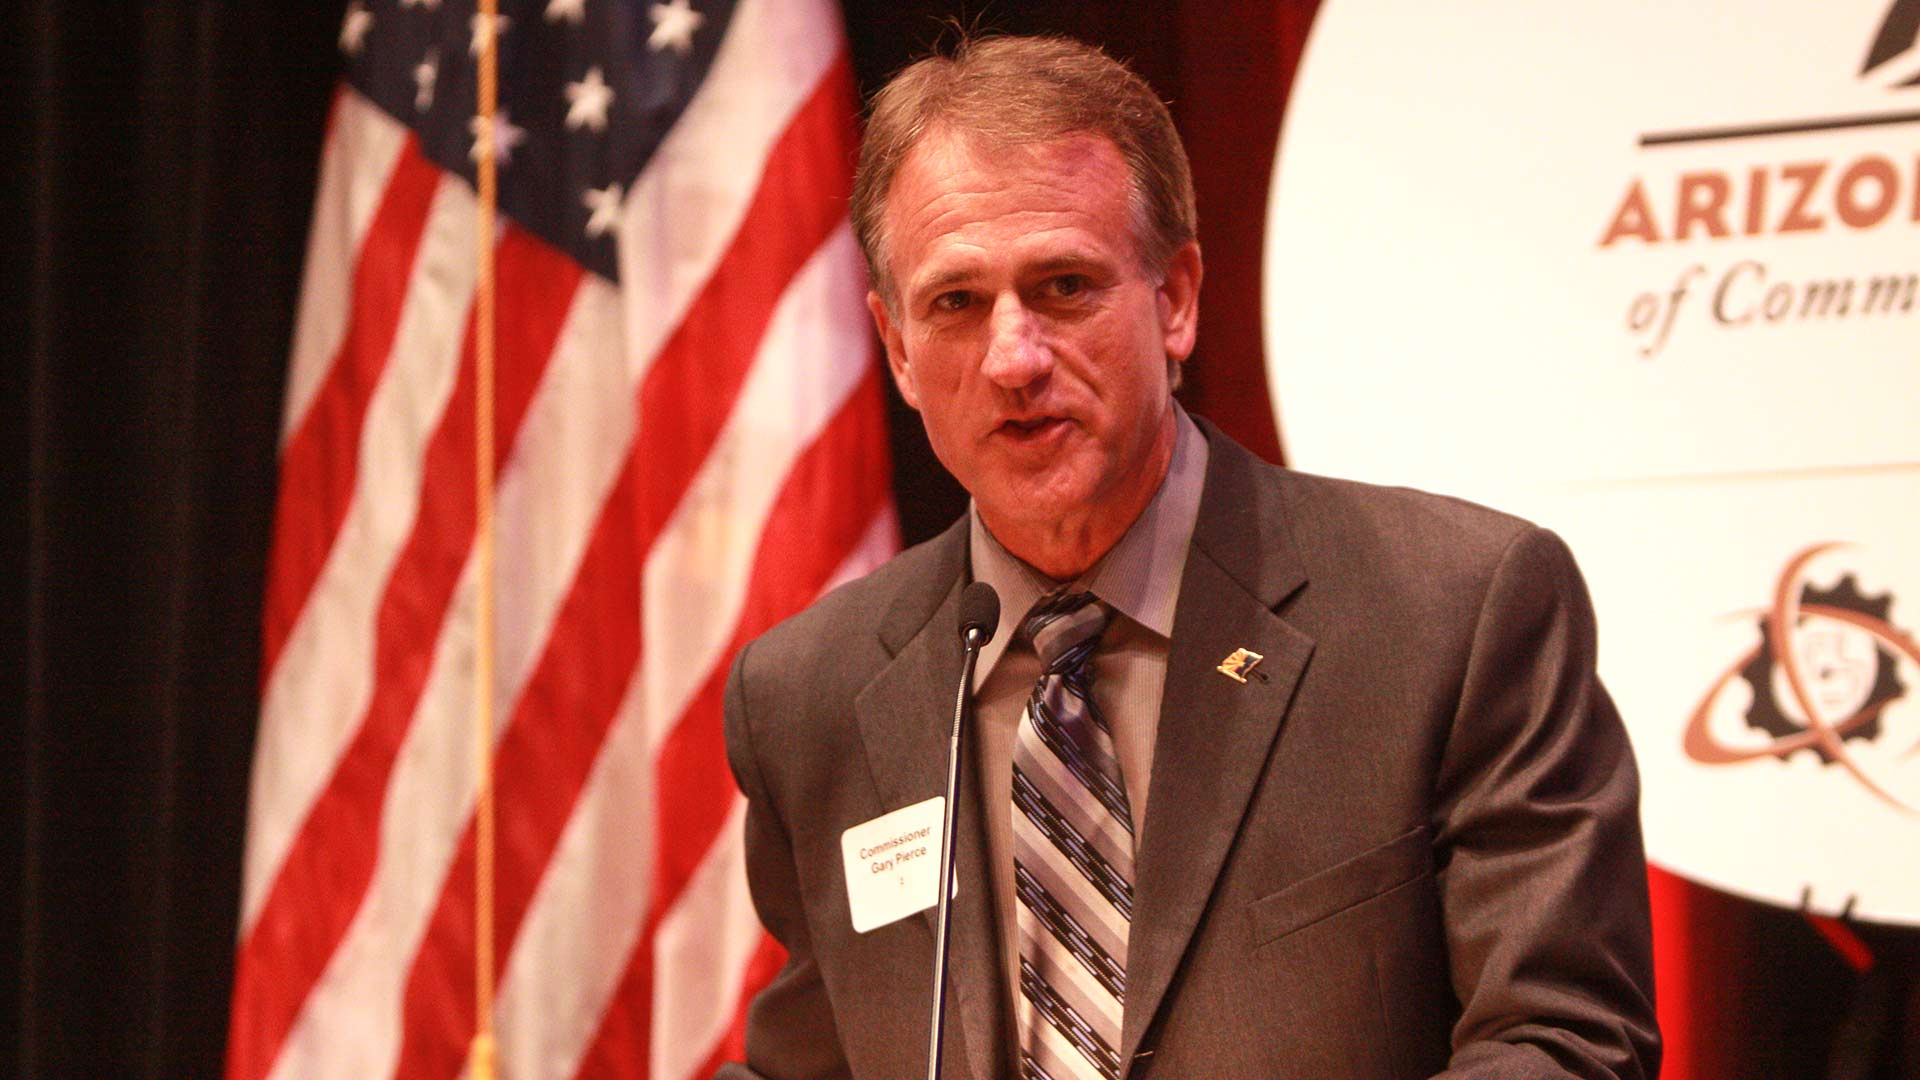 Former Arizona Corporation Commissioner Gary Pierce, in 2013.